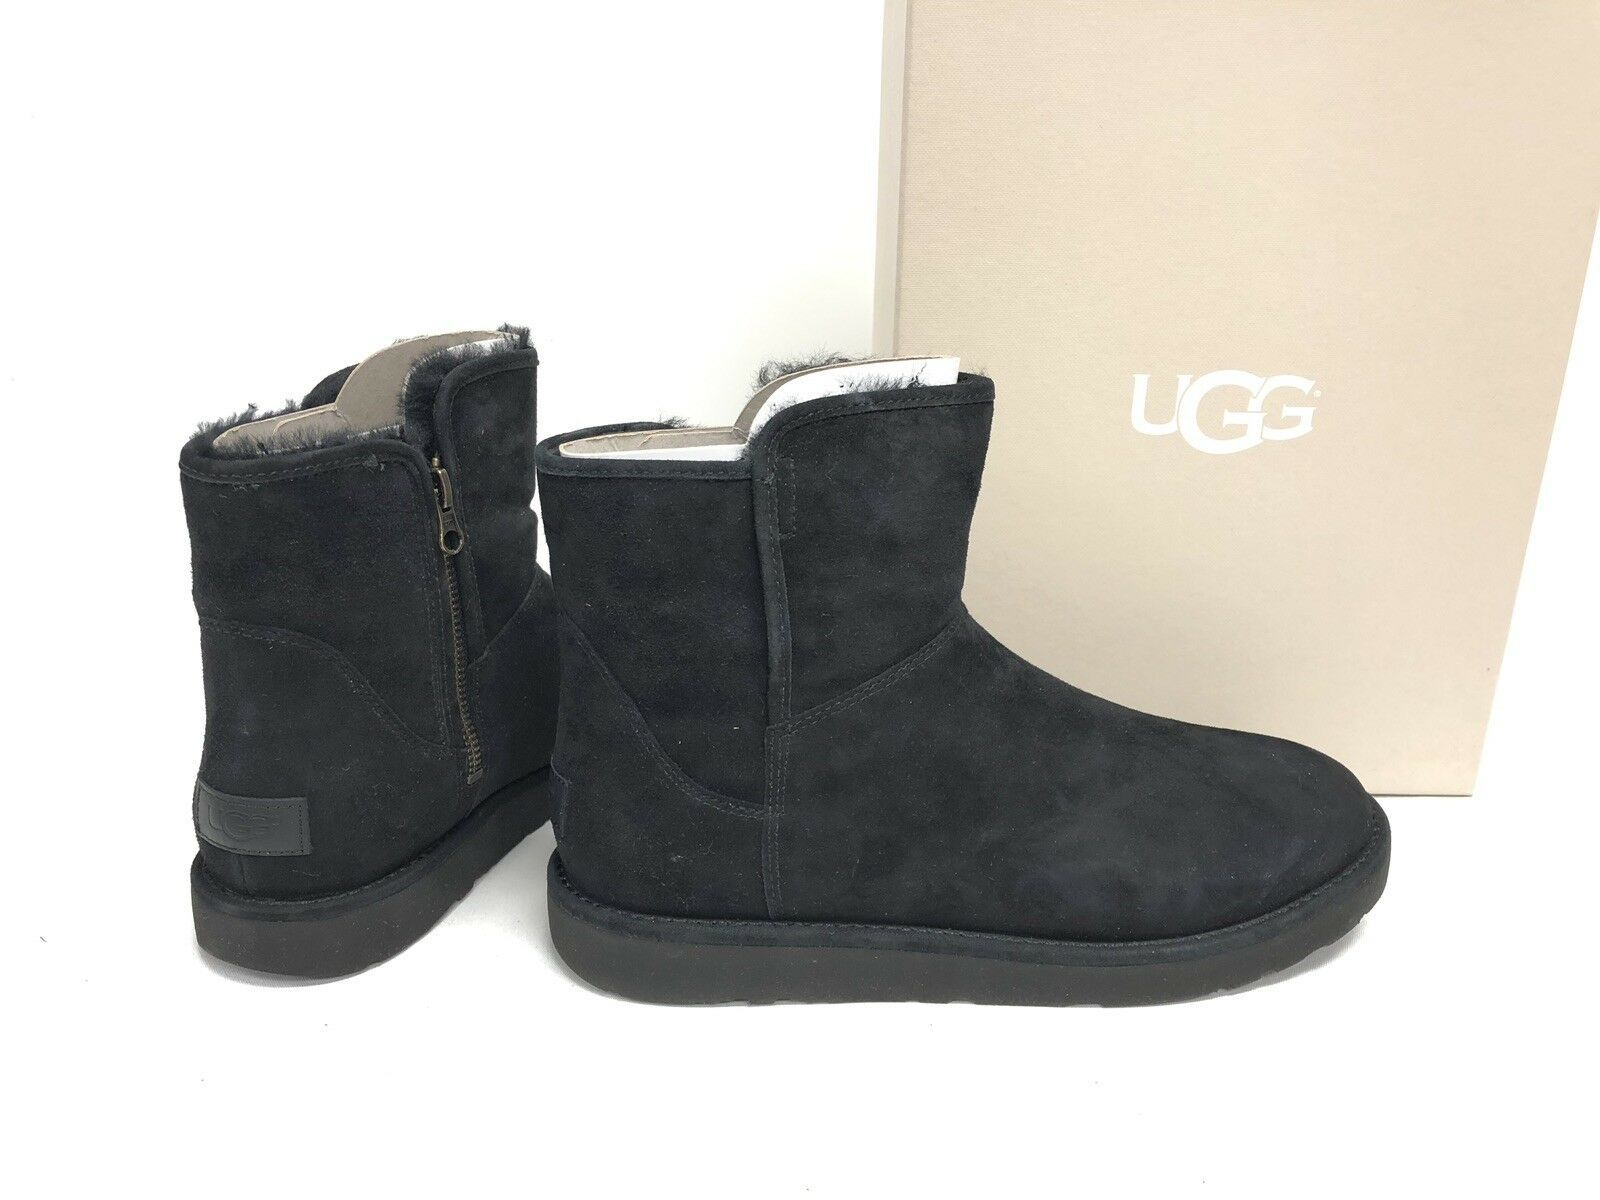 bfc41d4b452 Ugg Abree Ii Mini Black Suede Shearling and 50 similar items